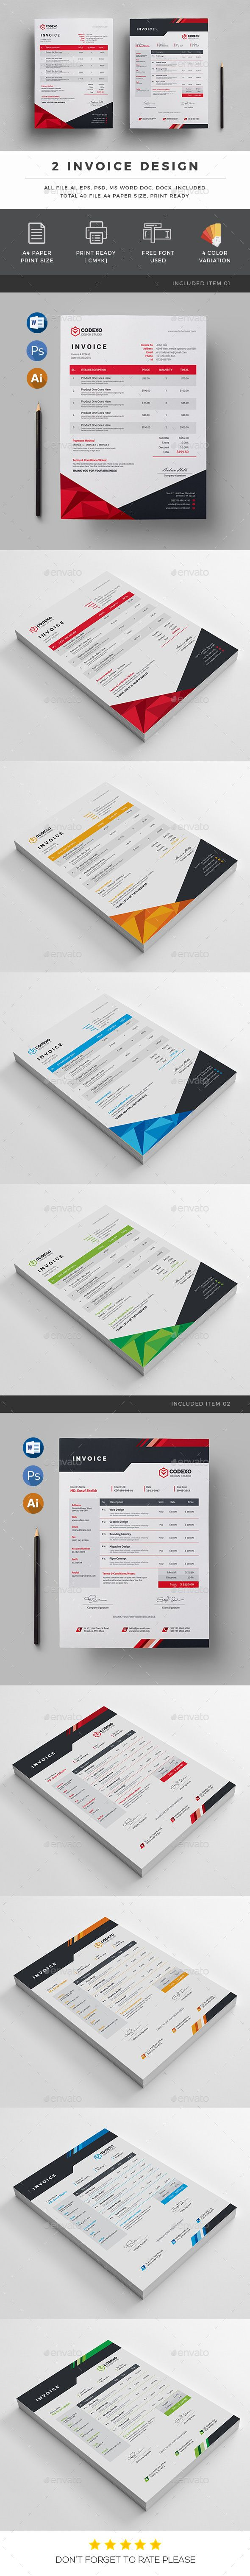 Invoice Template AI, EPS, PSD, DOC, DOCX - A4 and US Letter Size